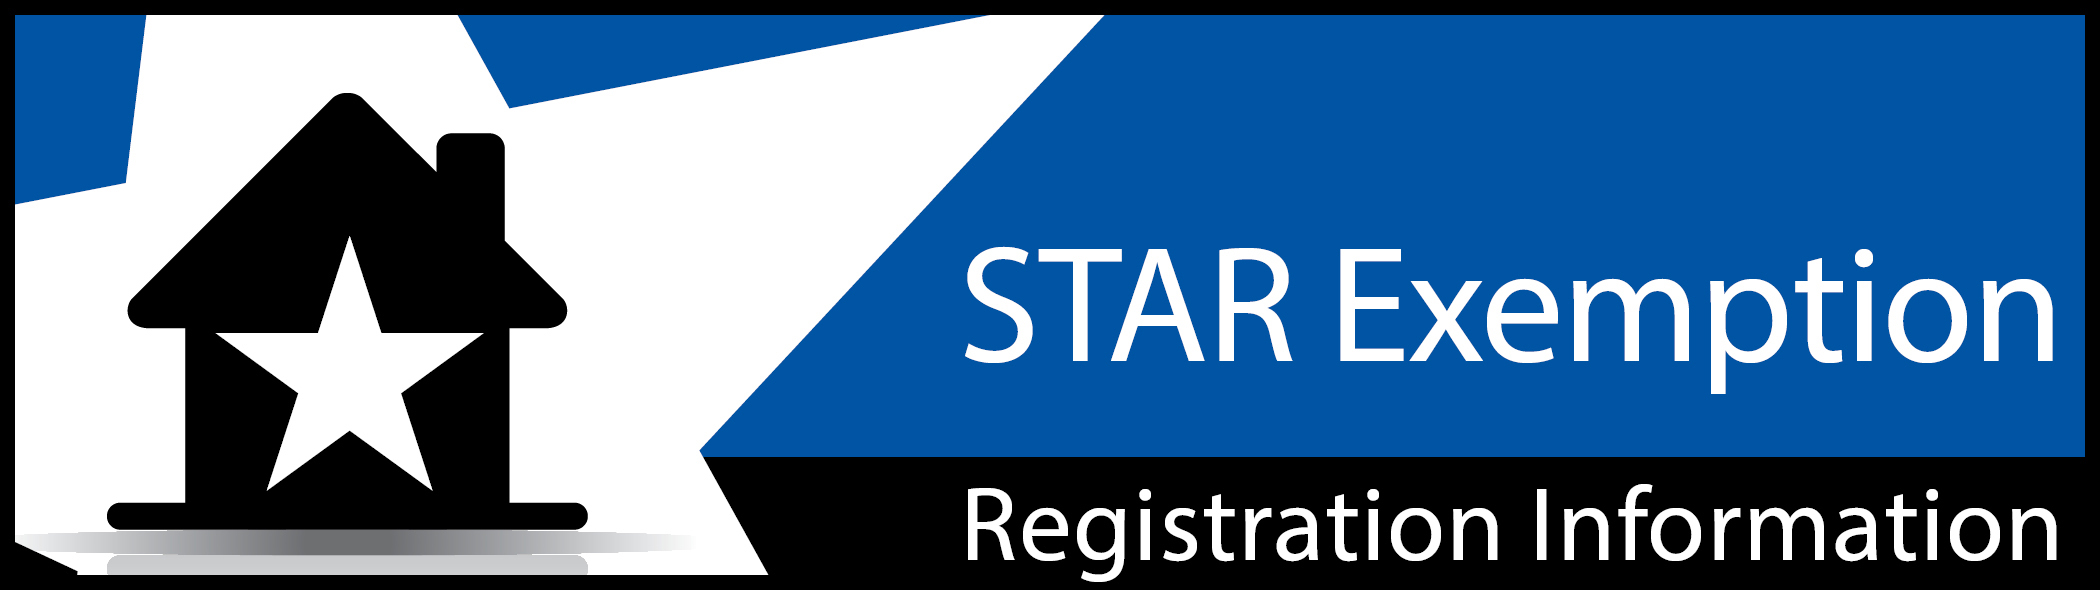 STAR Exemption - Registration Information